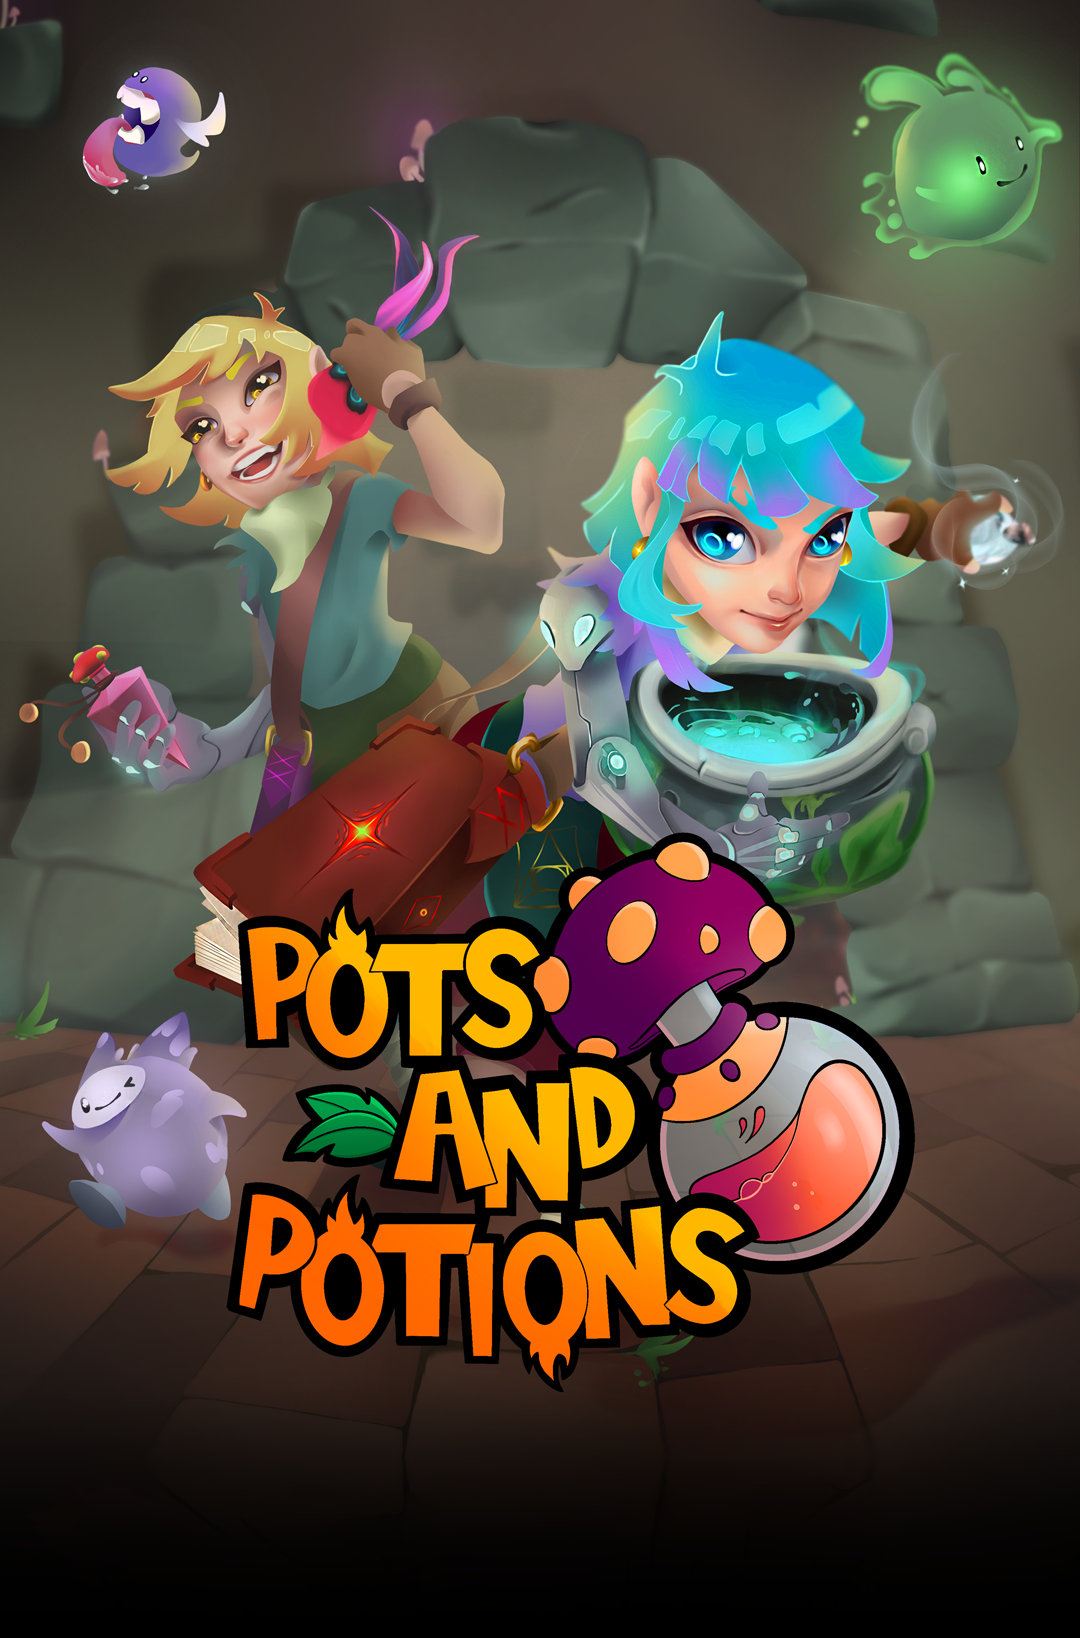 Pots and Potions video game poster cover